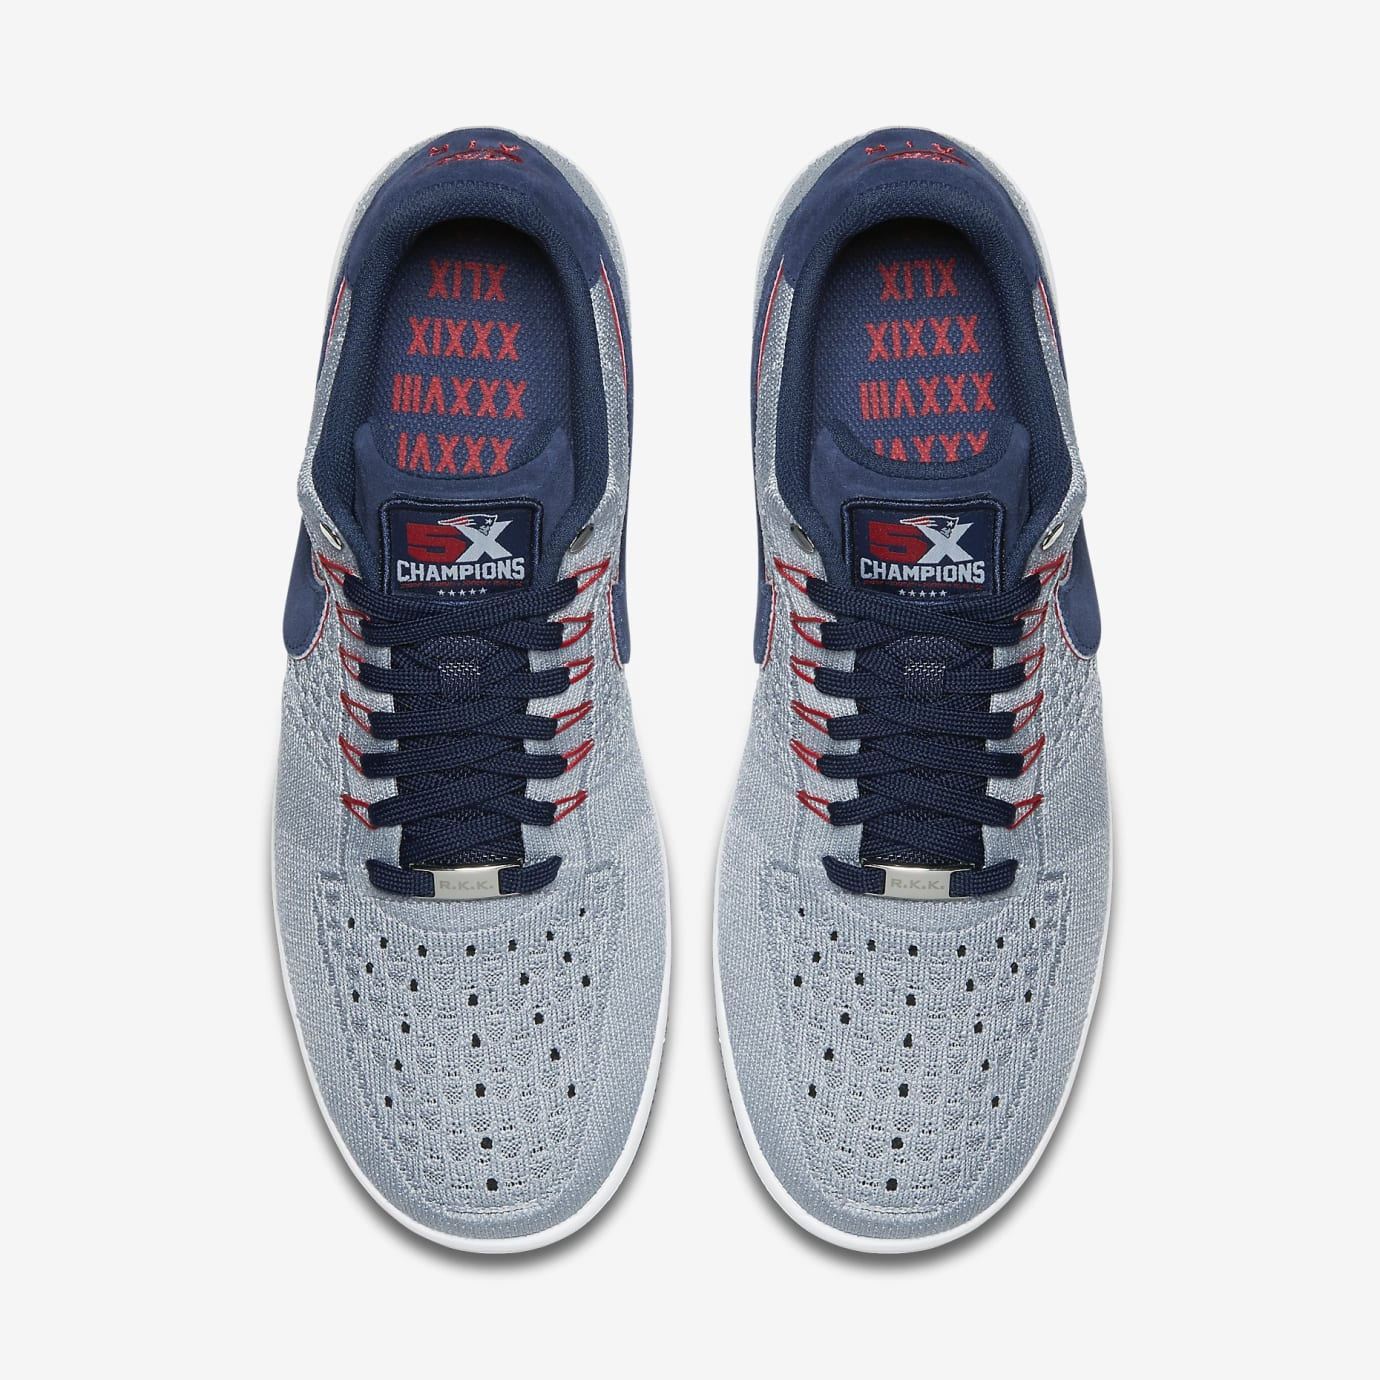 Nike Air Force 1 Ultra Flyknit RKK Patriots AH8425-001 (Top)